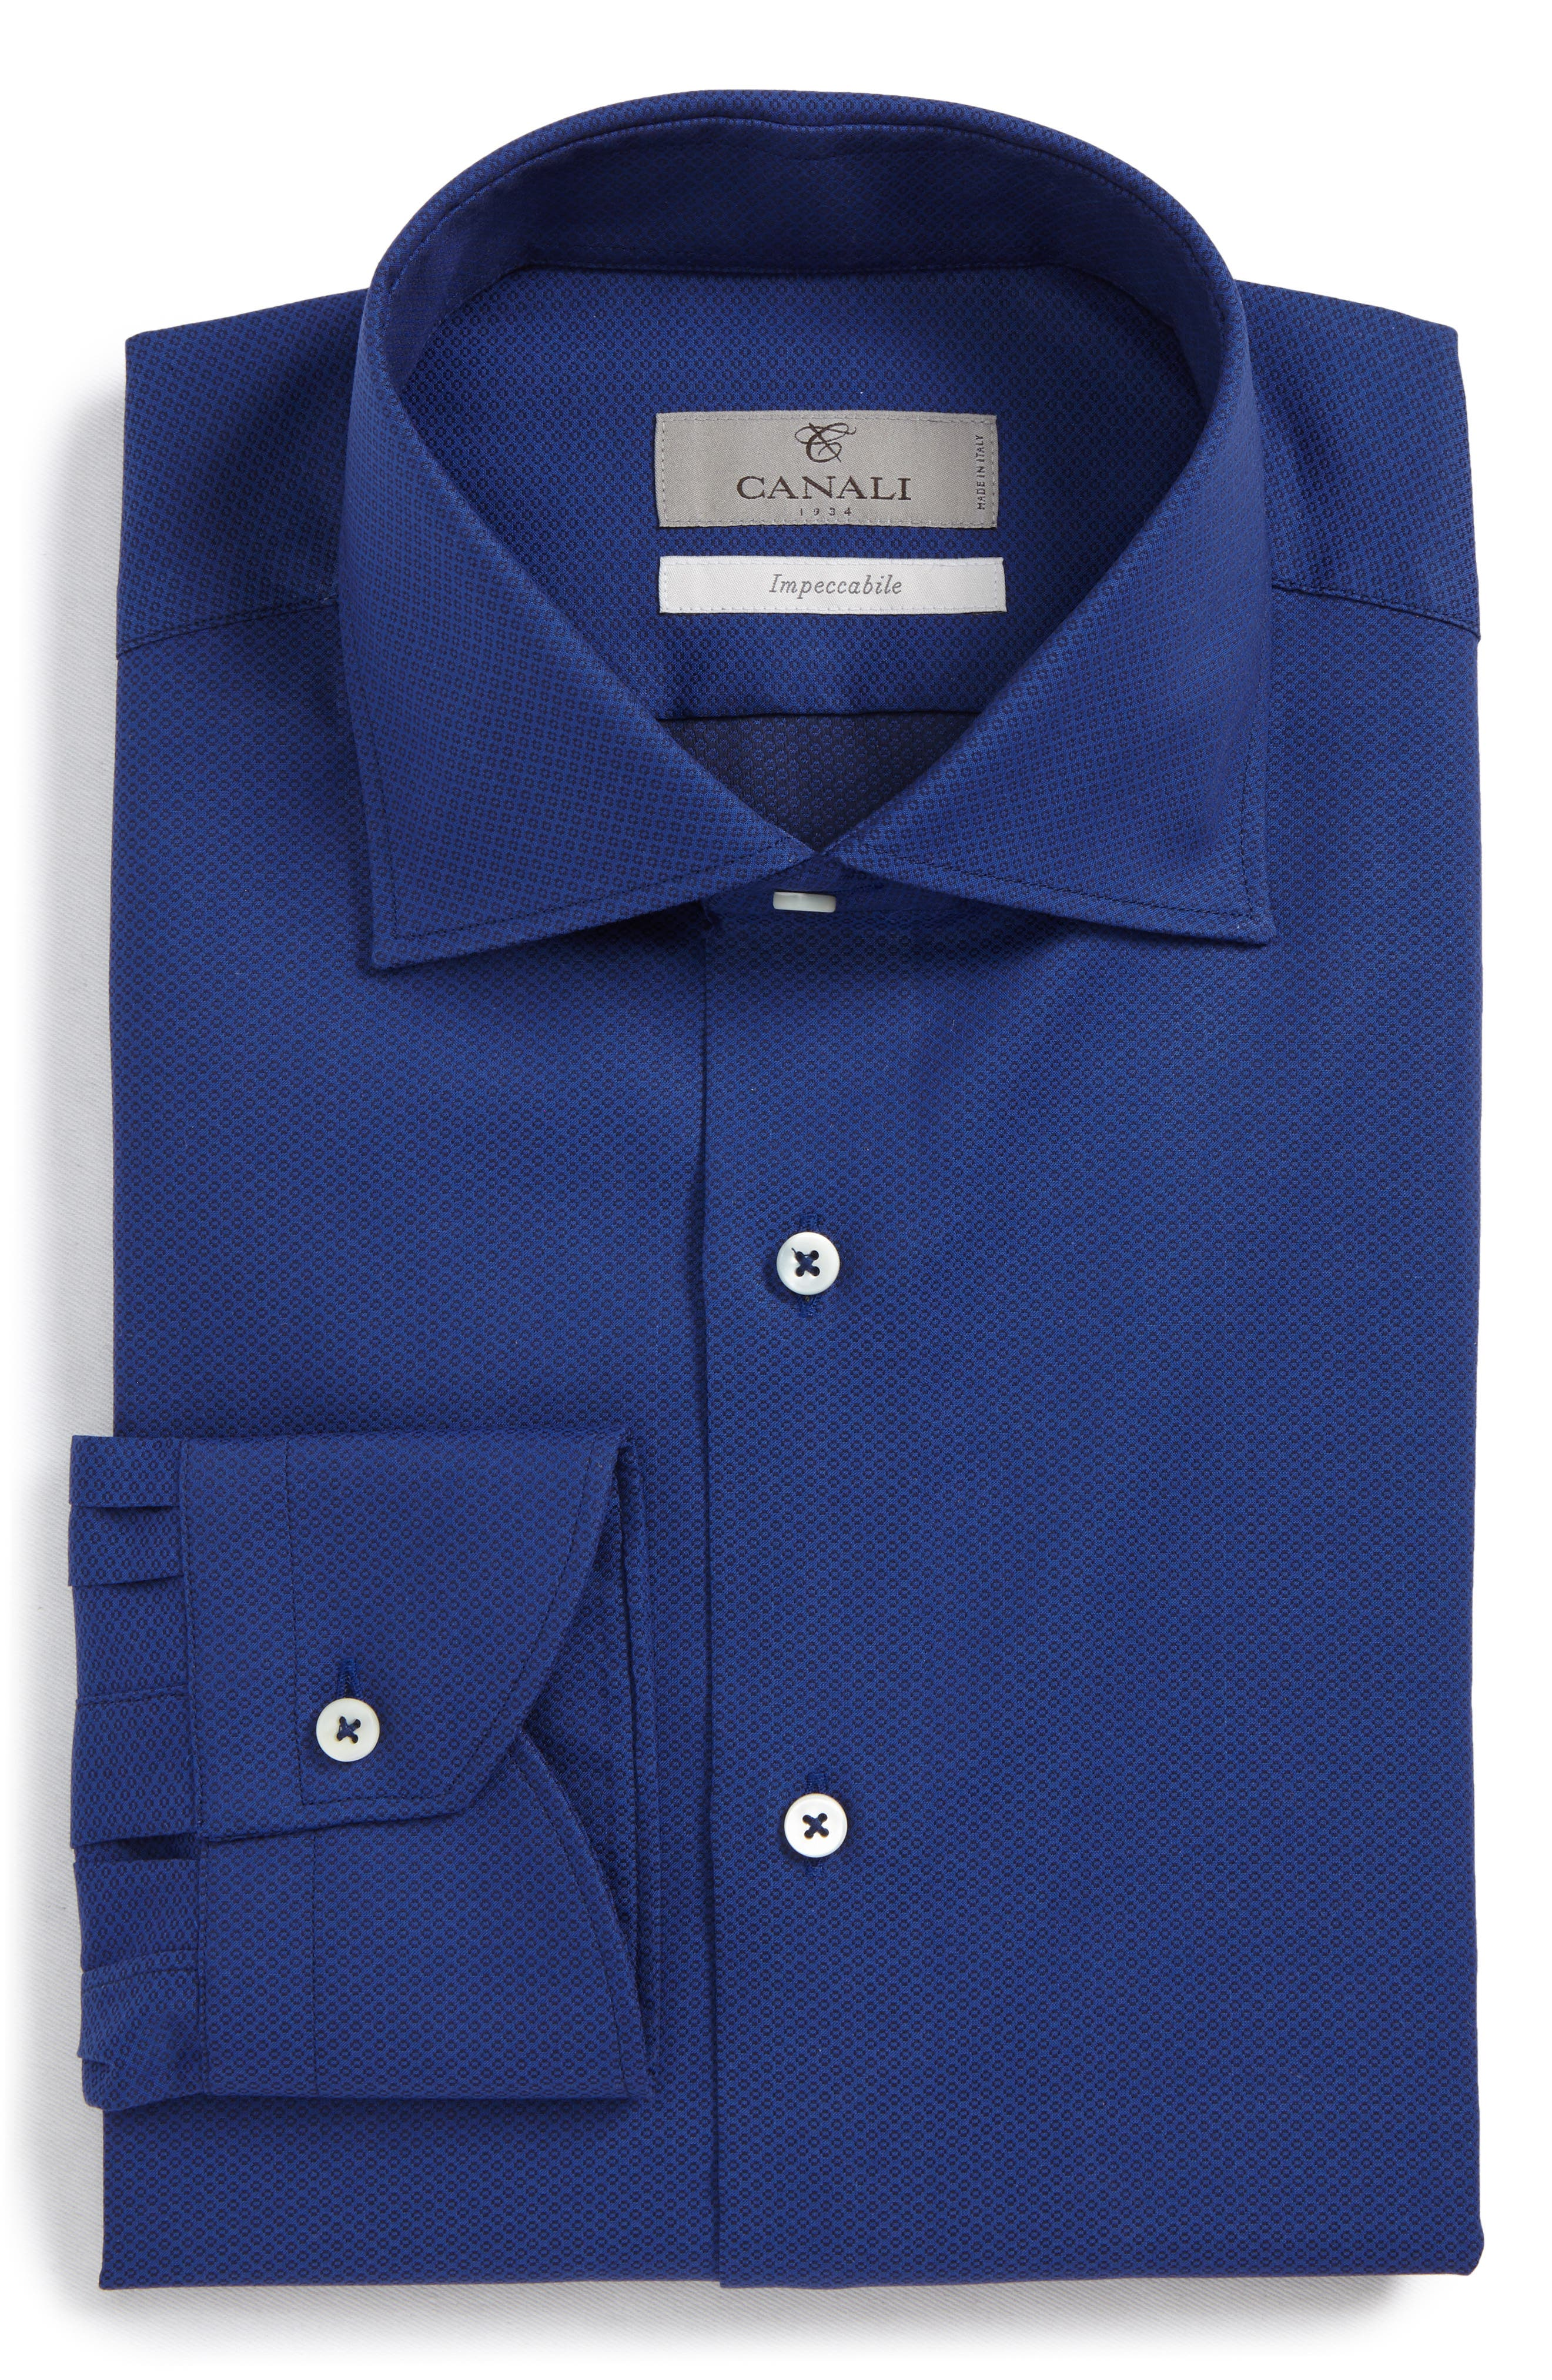 Regular Fit Geometric Dress Shirt,                             Main thumbnail 1, color,